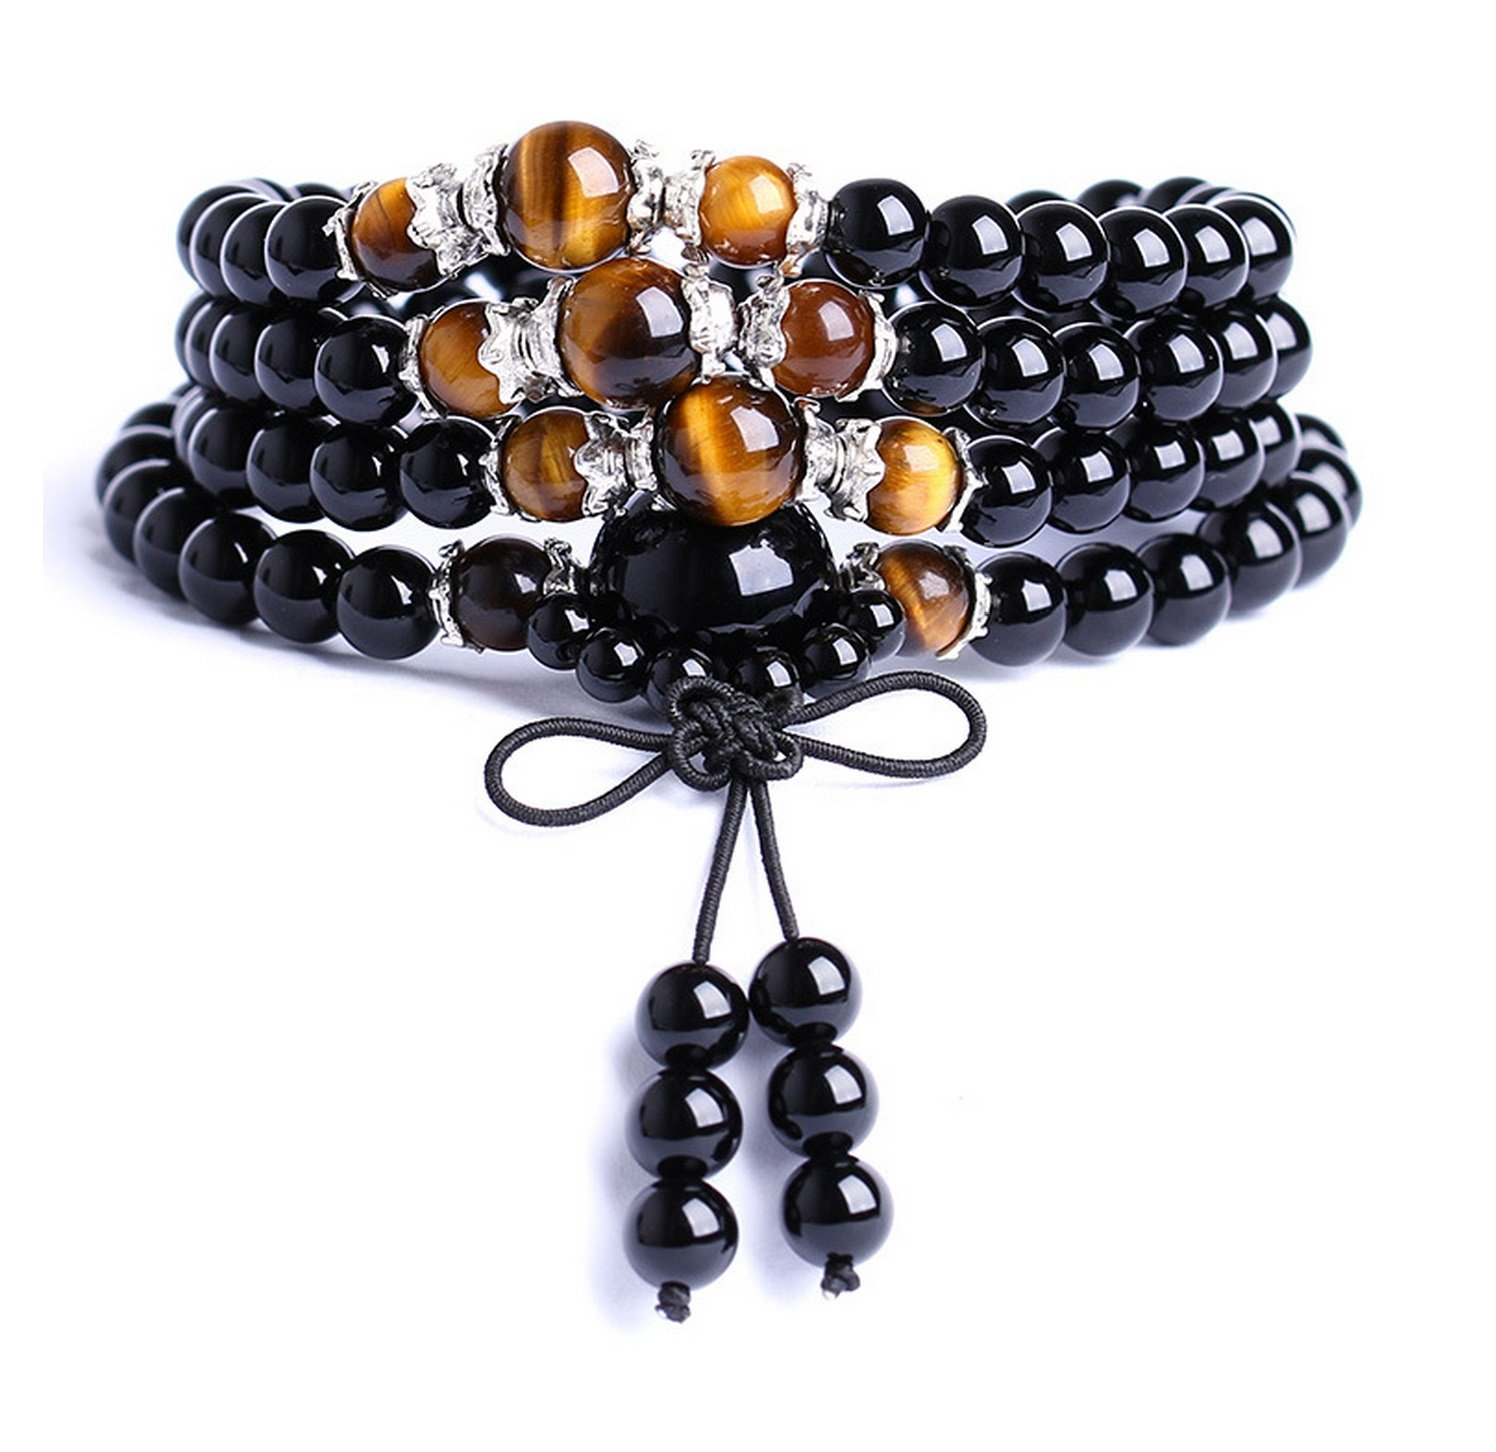 Onlineb2c Obsidian Multilayer Tiger Eye Tibetan Buddhist Buddha Prayer Beads Mala Bracelet Necklace